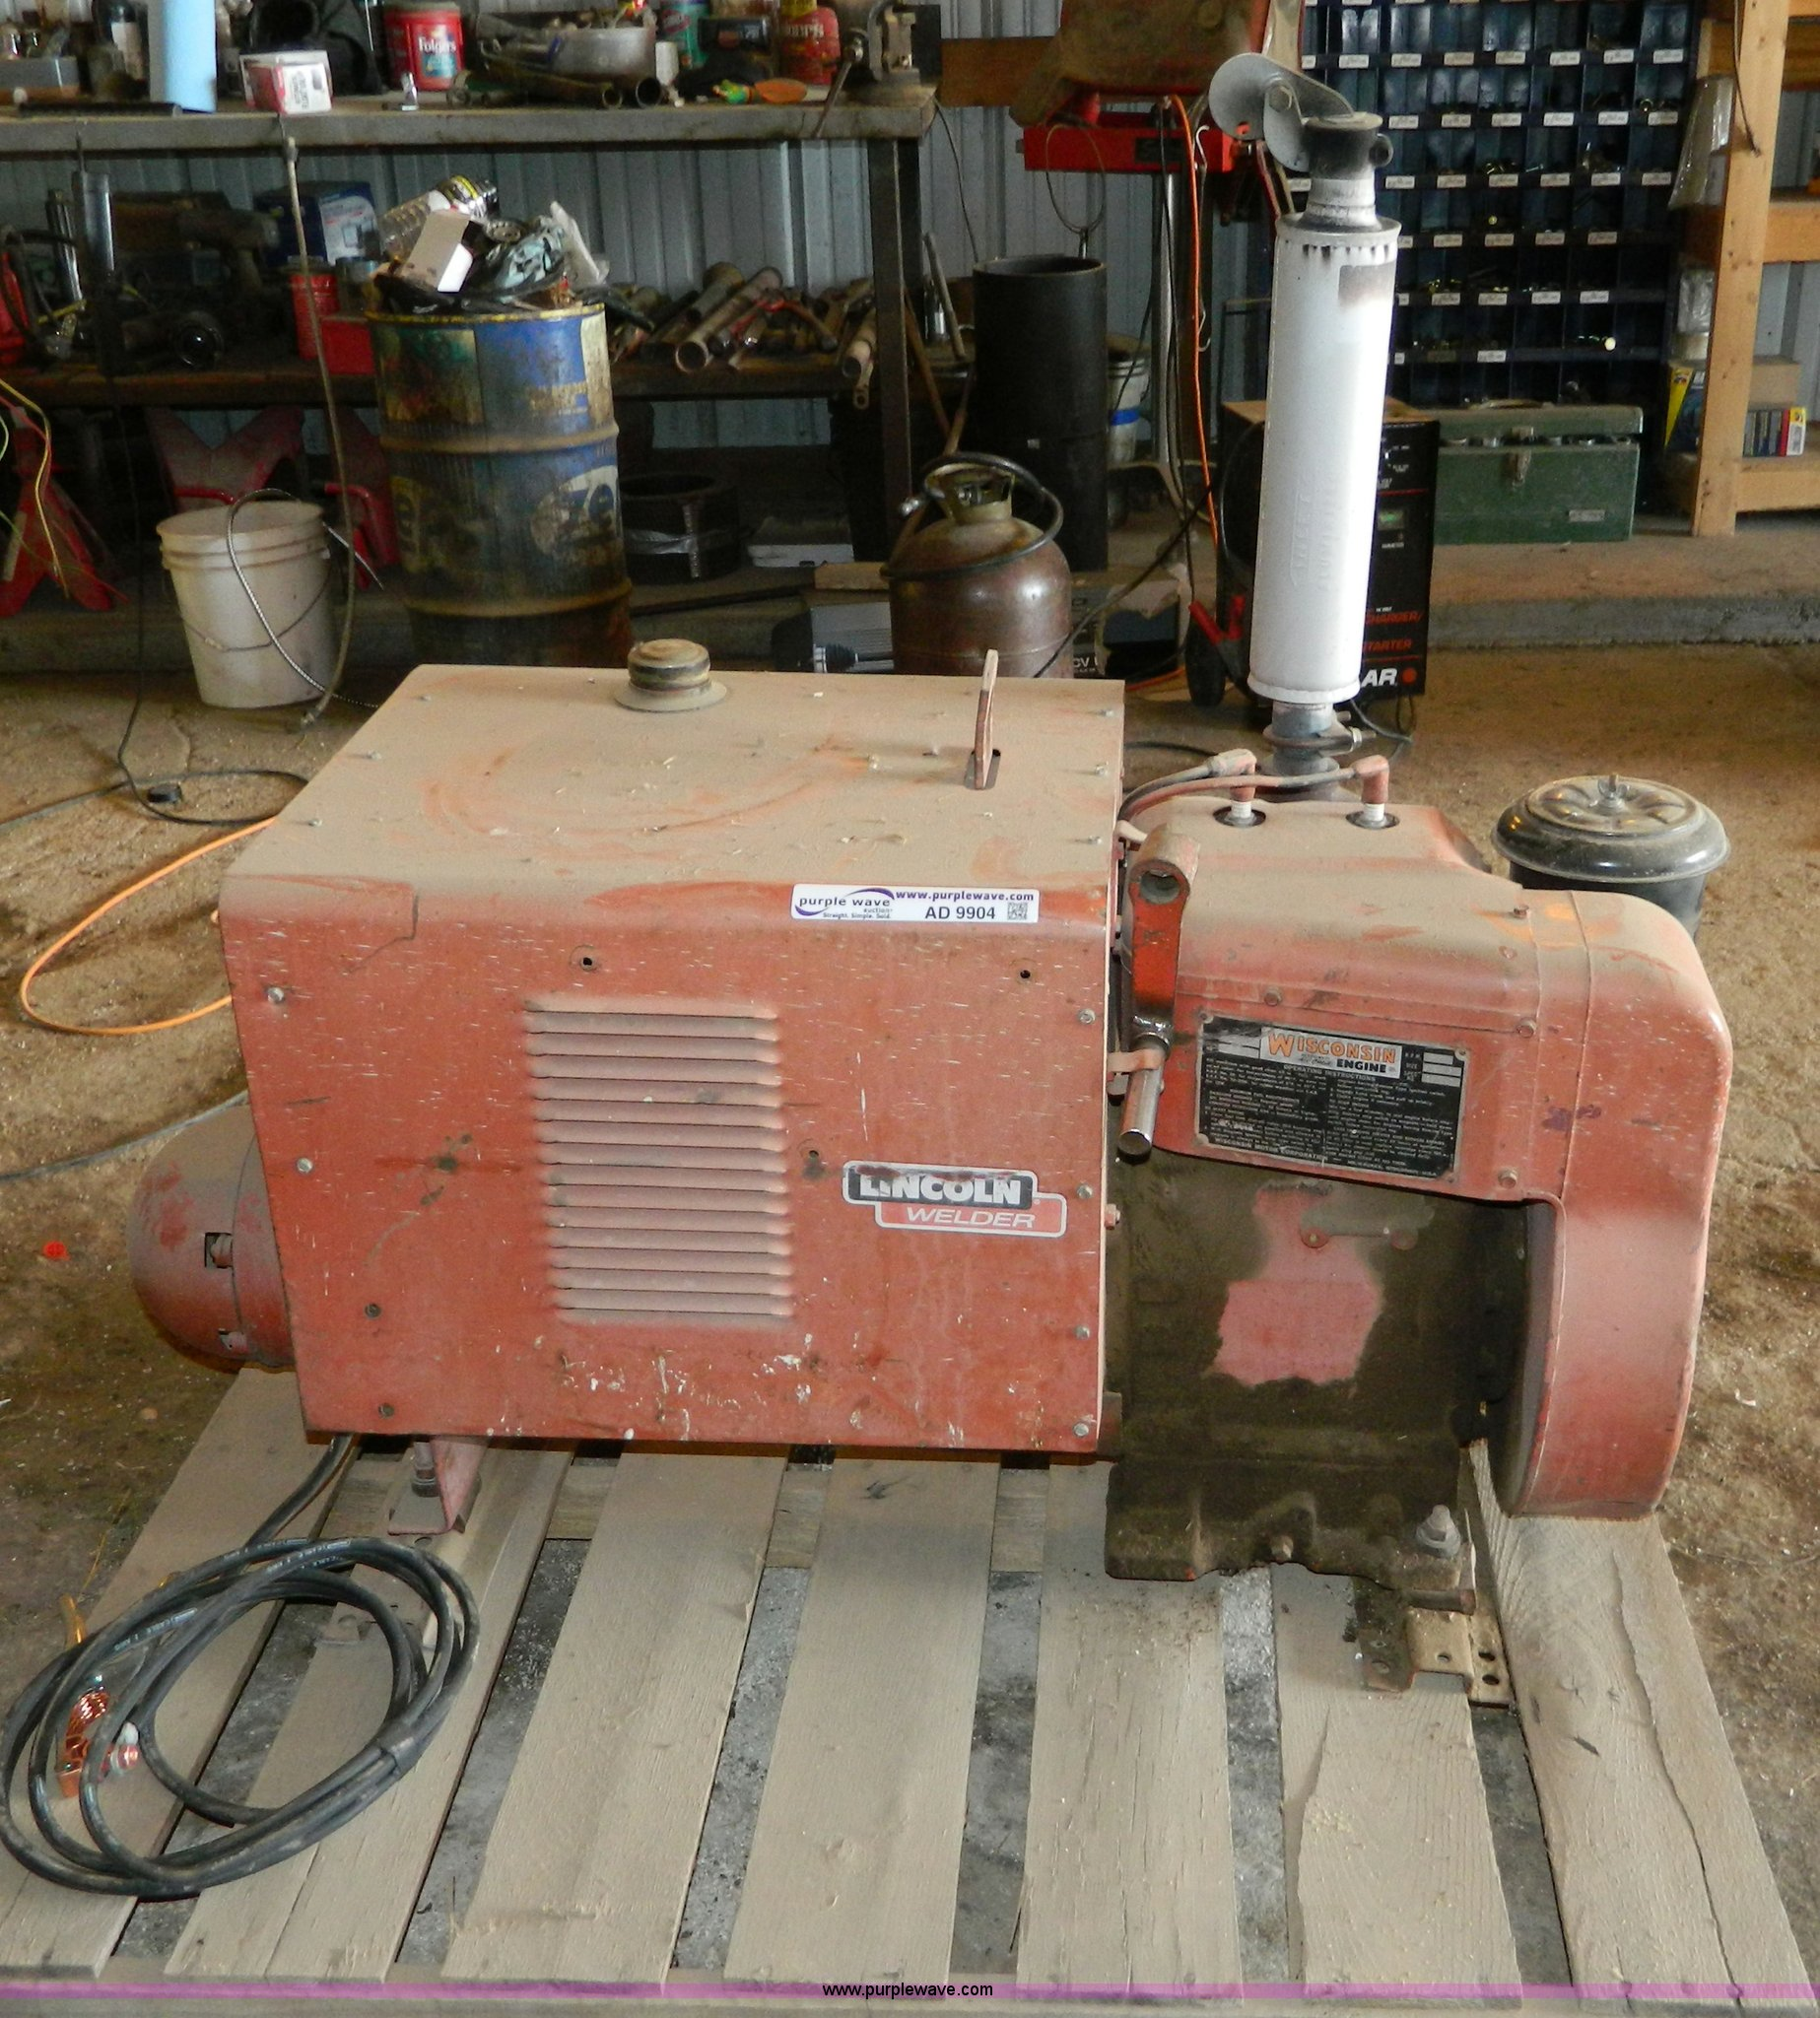 Lincoln AC 225 5 AS portable welder power plant